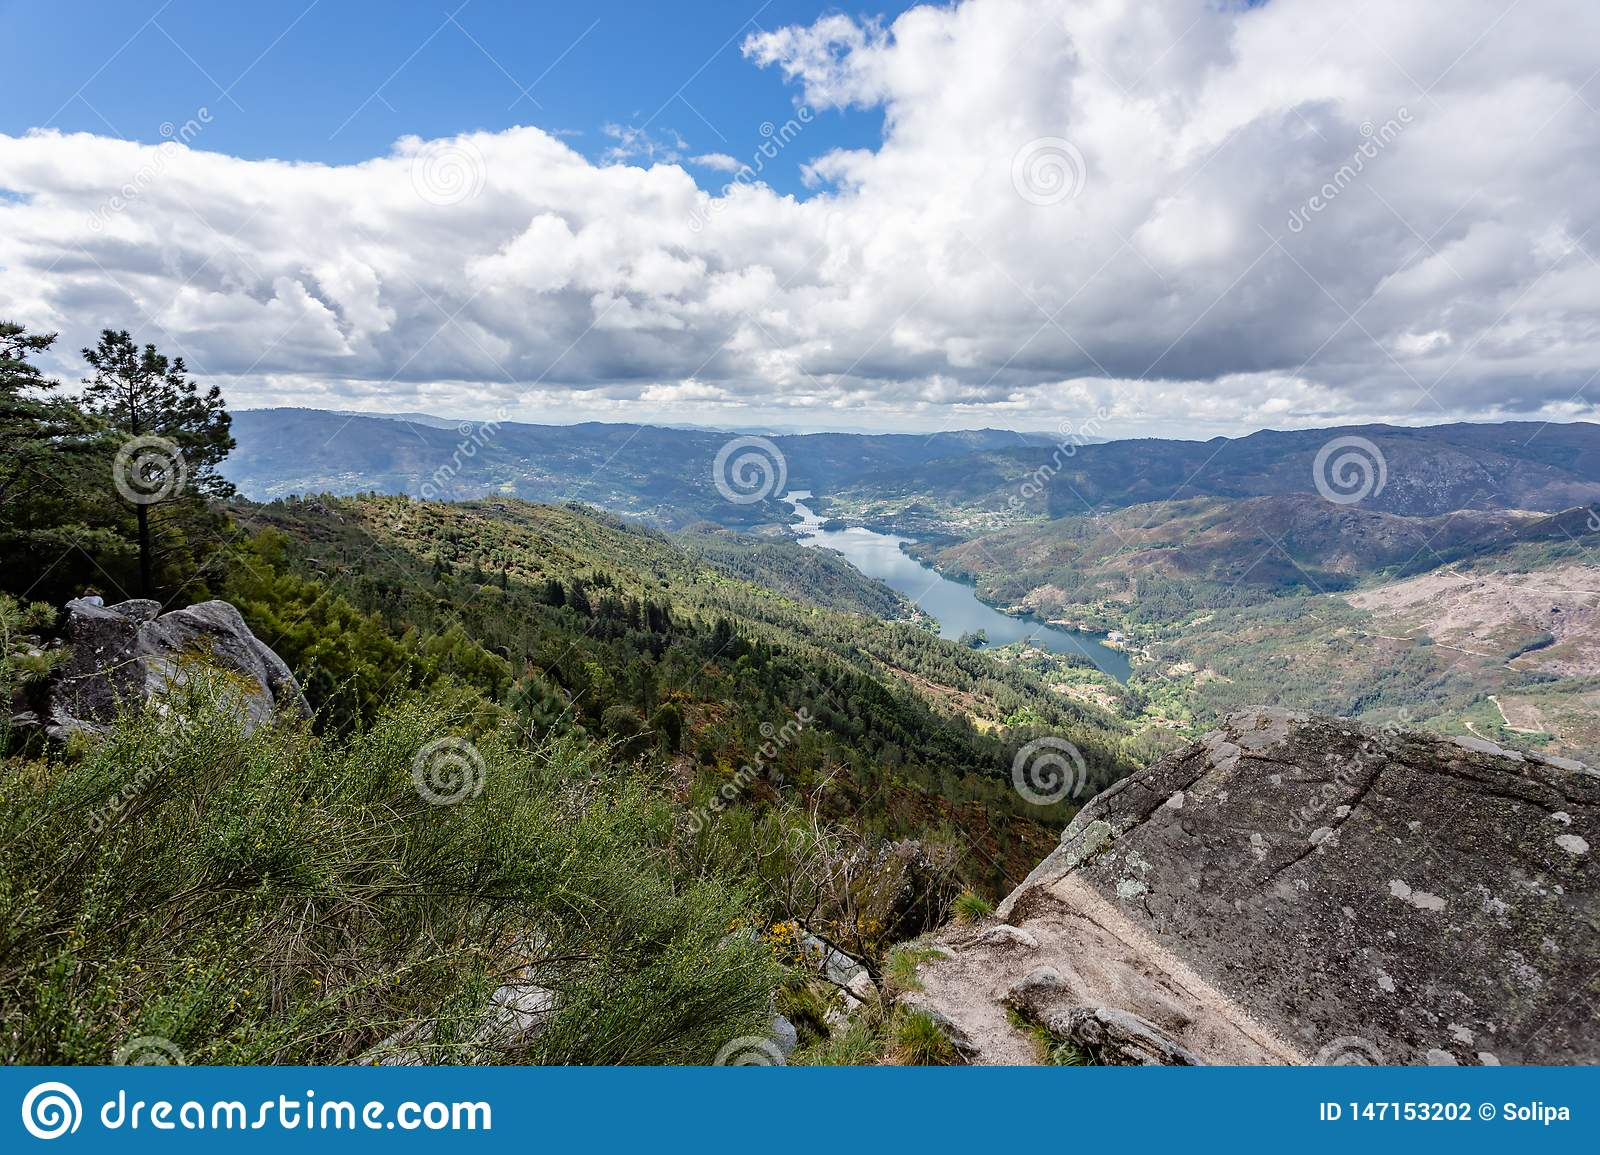 The viewpoint pedra bela in the Peneda Geres National Park, north of Portugal